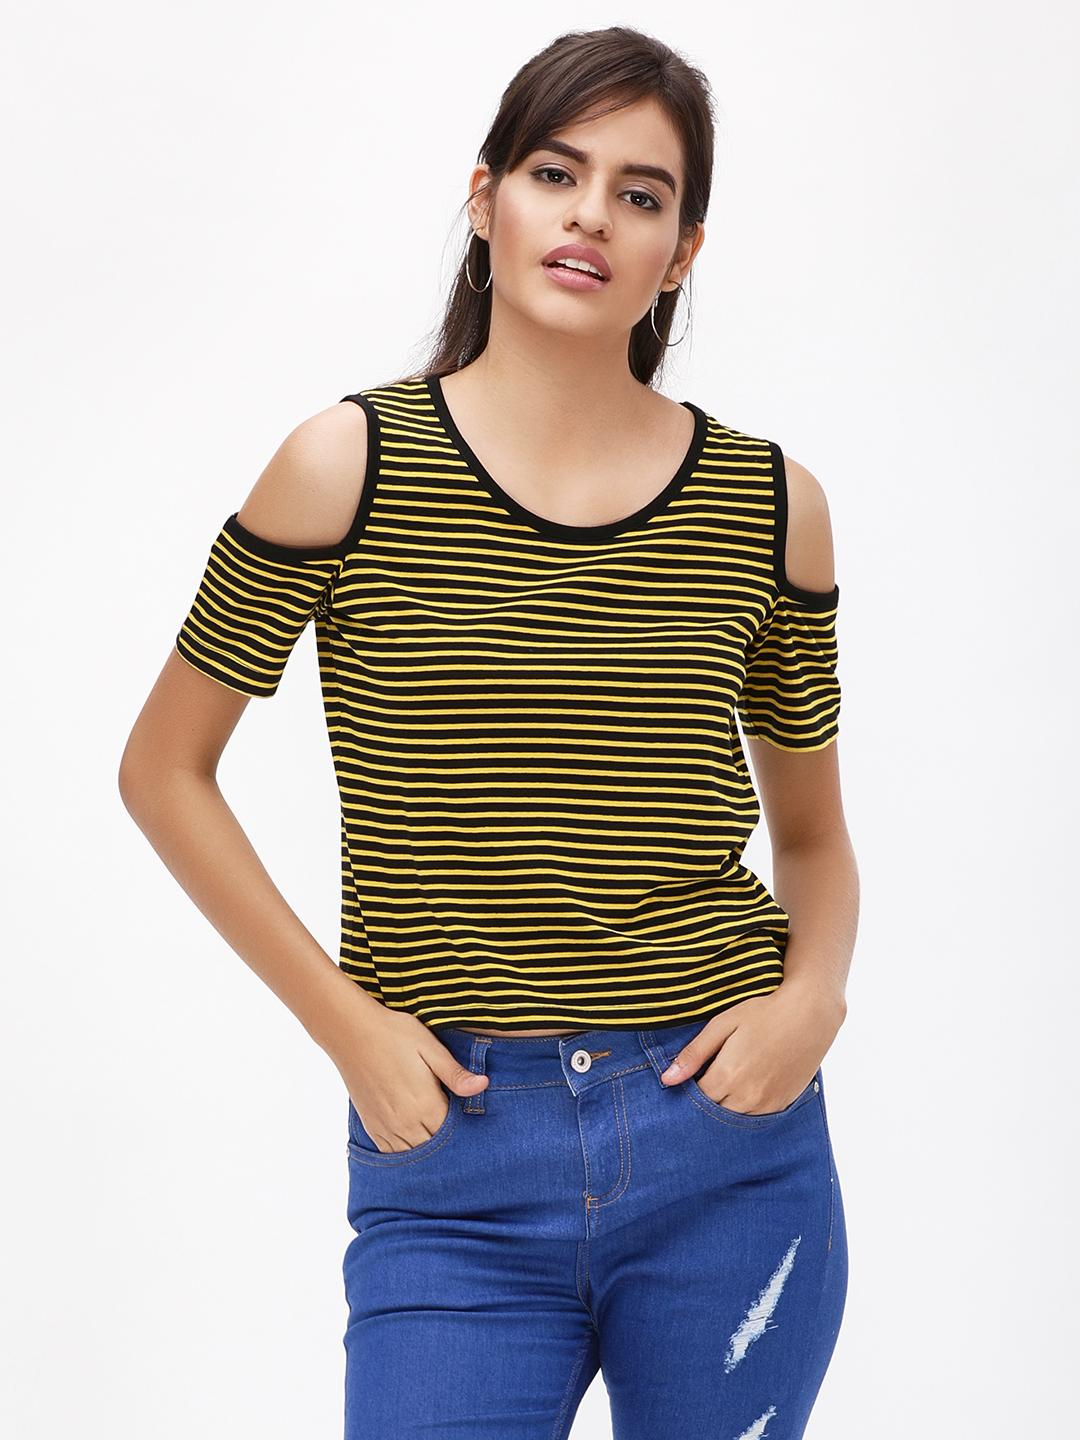 Blue Saint Yellow/Black Eacno Striped Cold Shoulder Top 1